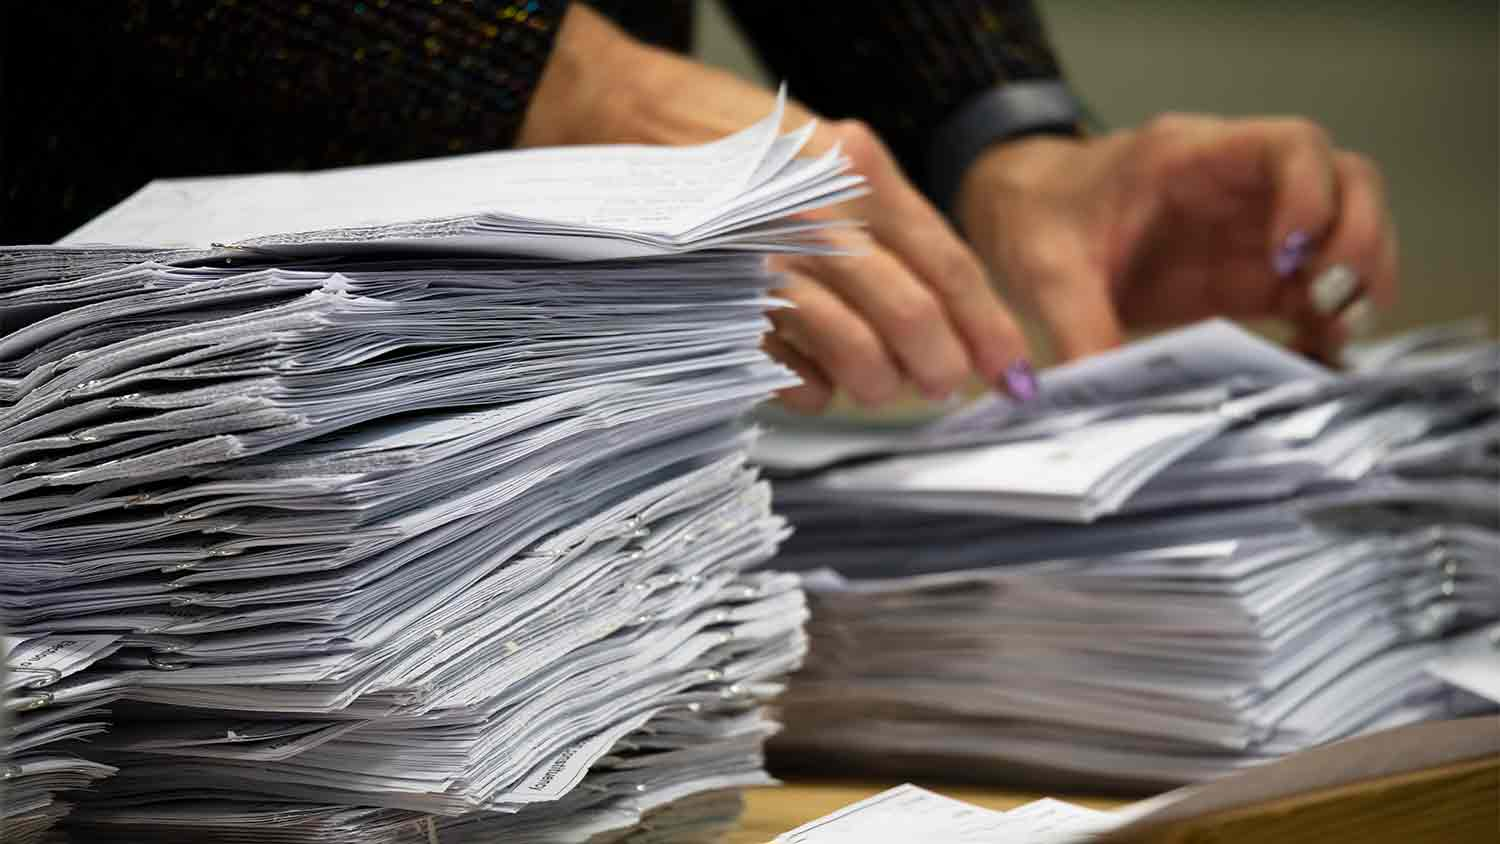 A woman flicking through a pile of papers